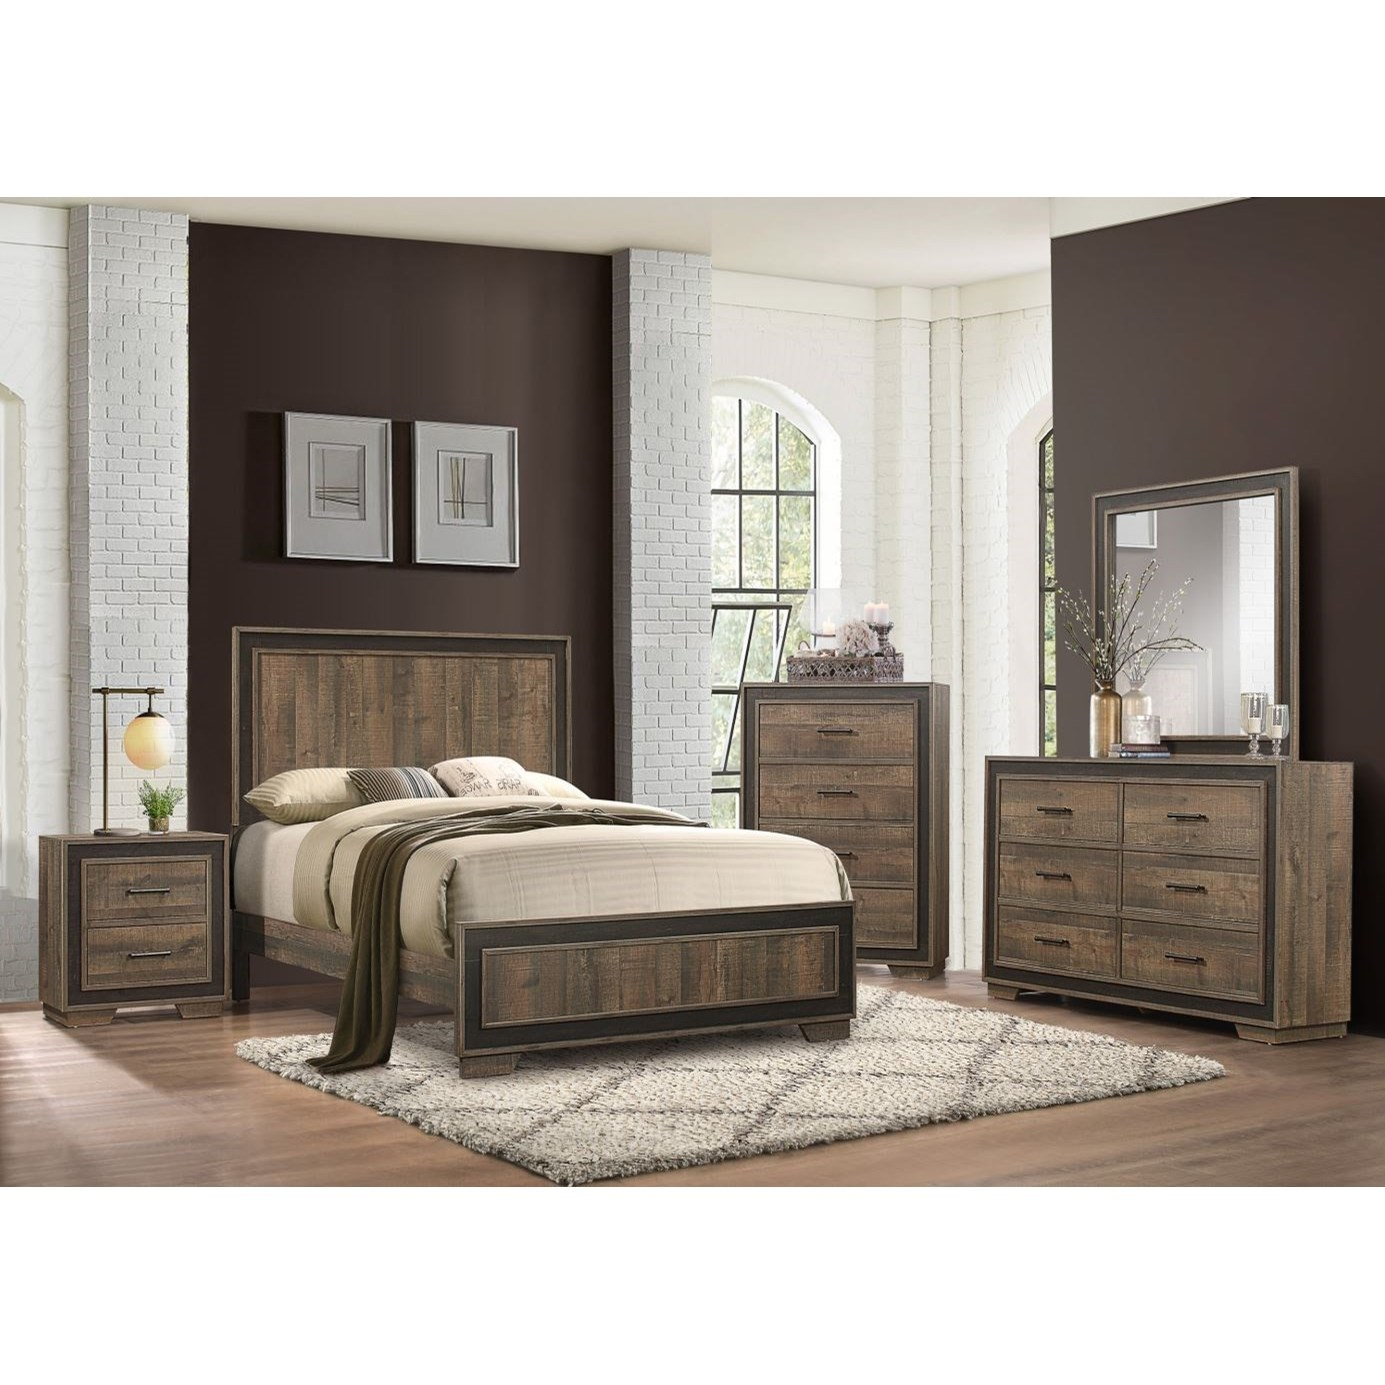 Ellendale California King Bedroom Group by Homelegance at Rife's Home Furniture